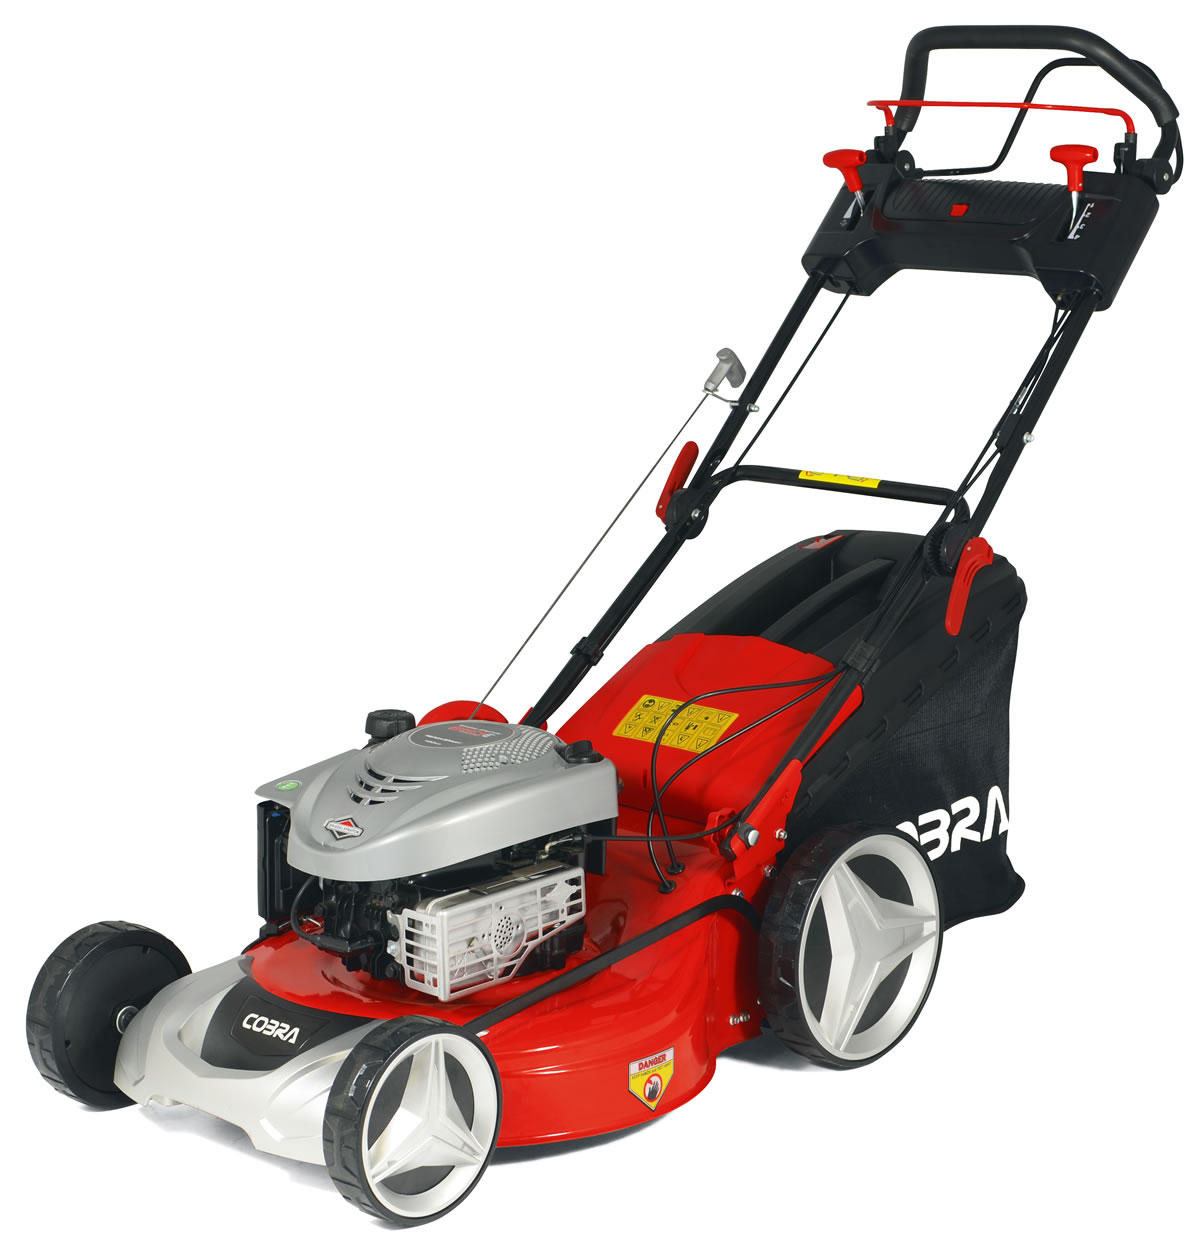 COBRA MX514SPB Petrol Lawn Mower